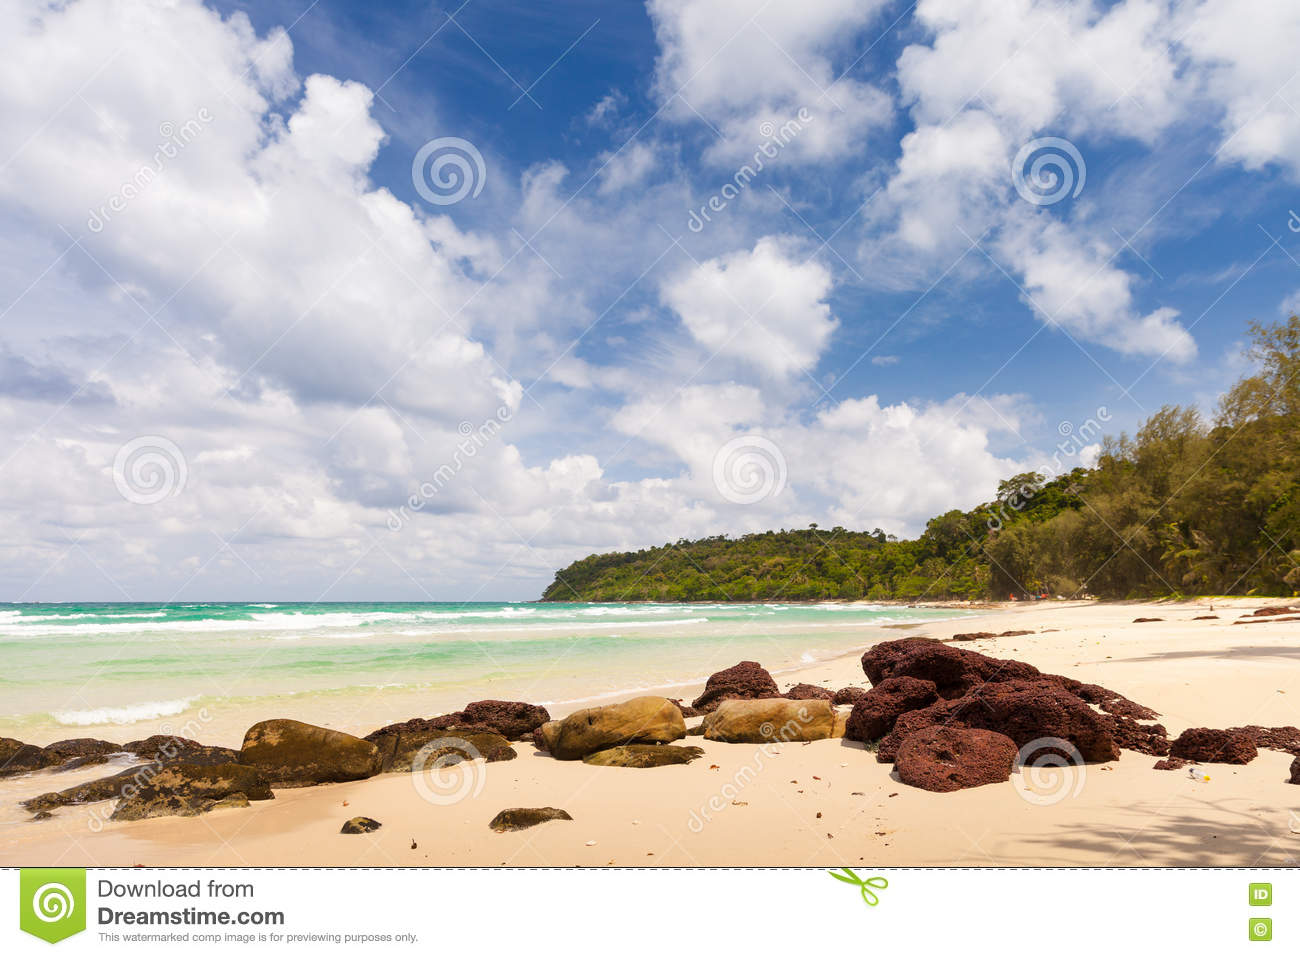 Lonely abandoned tropical beach